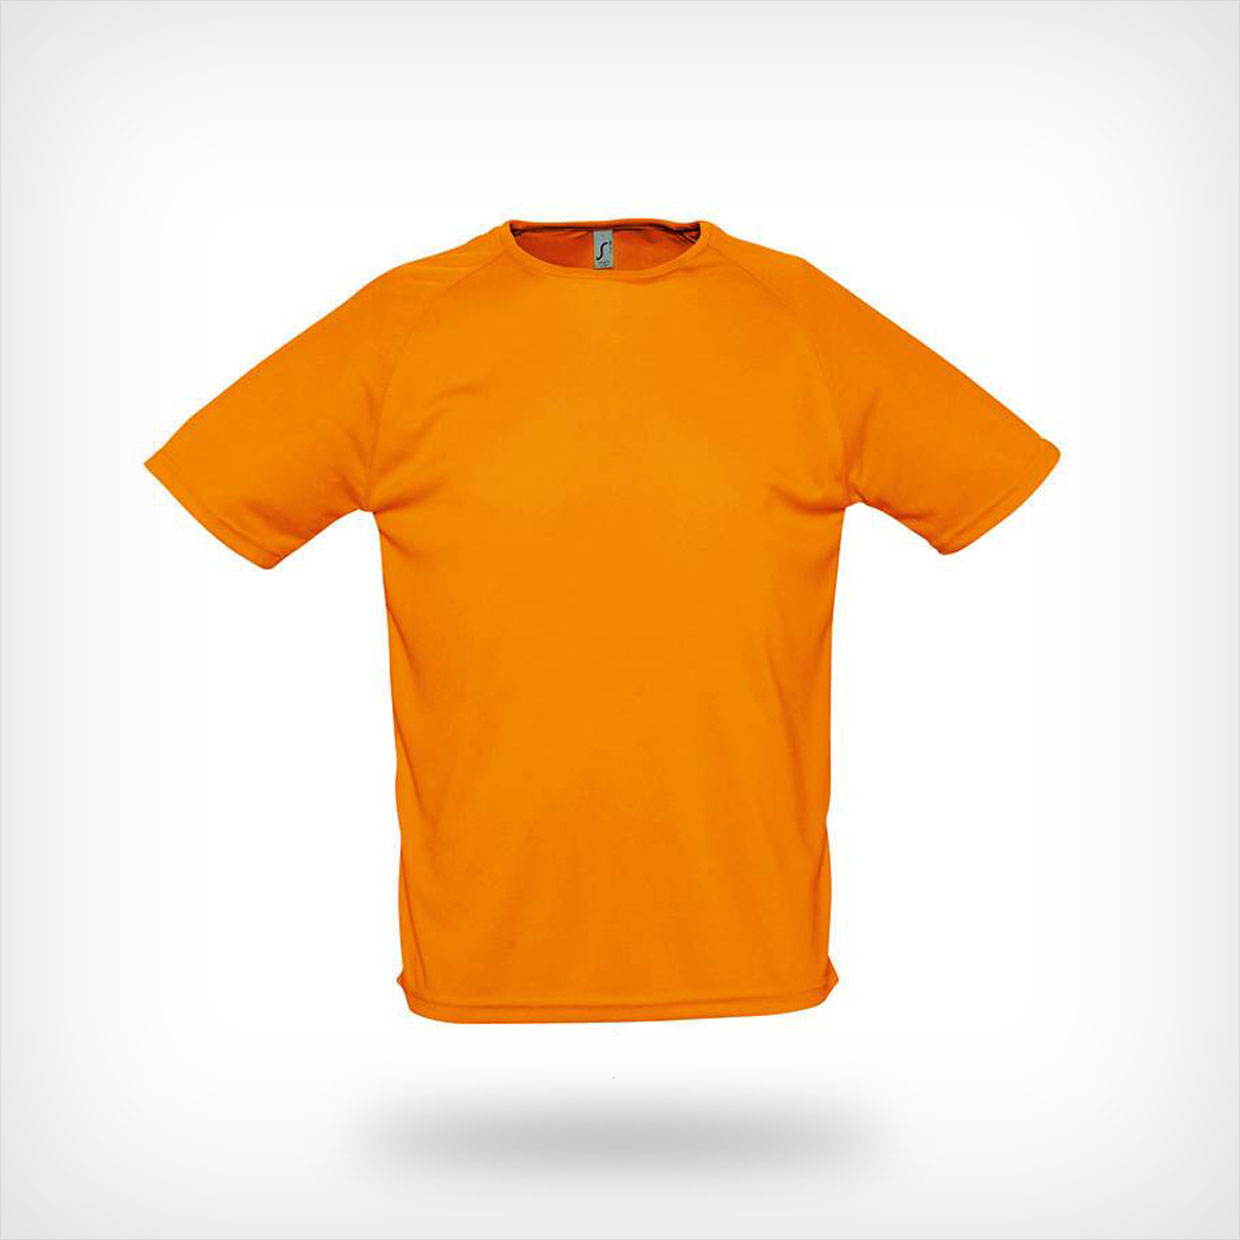 Sols Sporty kids t-shirt, 01166